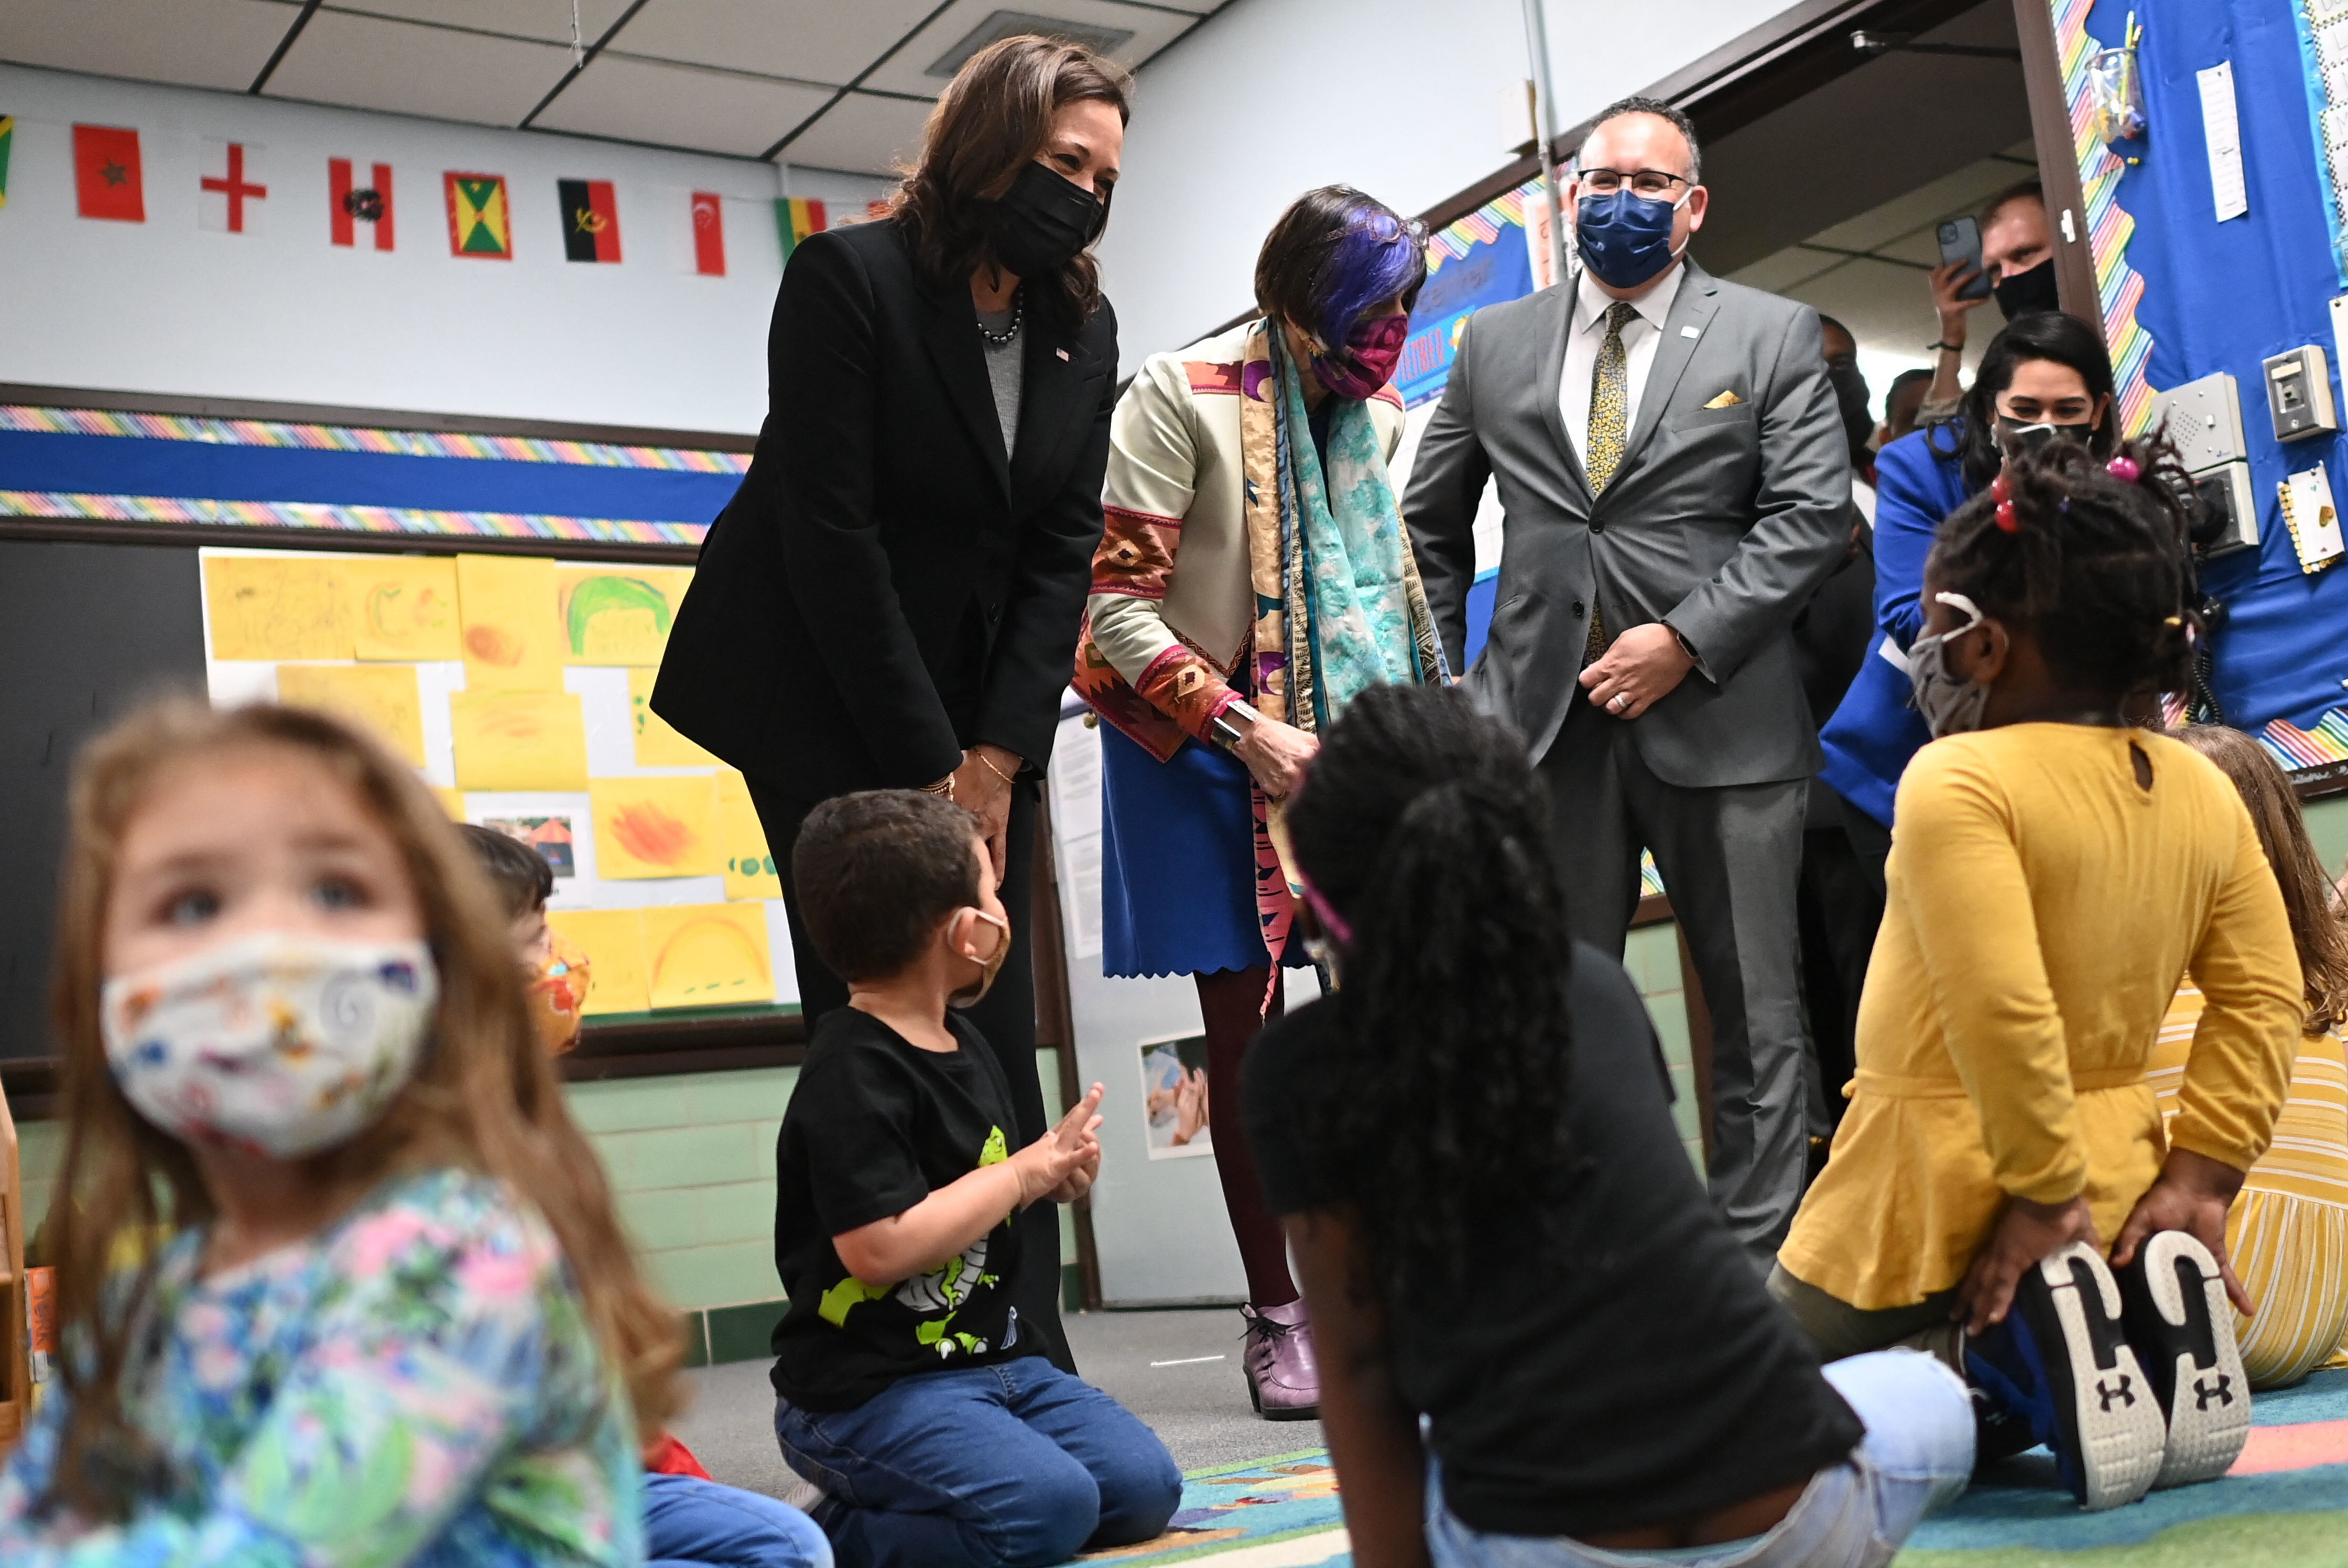 U.S. Vice President Kamala Harris, Education Secretary Miguel Cardona (R), and US Representative Rosa DeLauro (C) visit a classroom in the West Haven Child Development Center in West Haven, Connecticut on March 26, 2021.